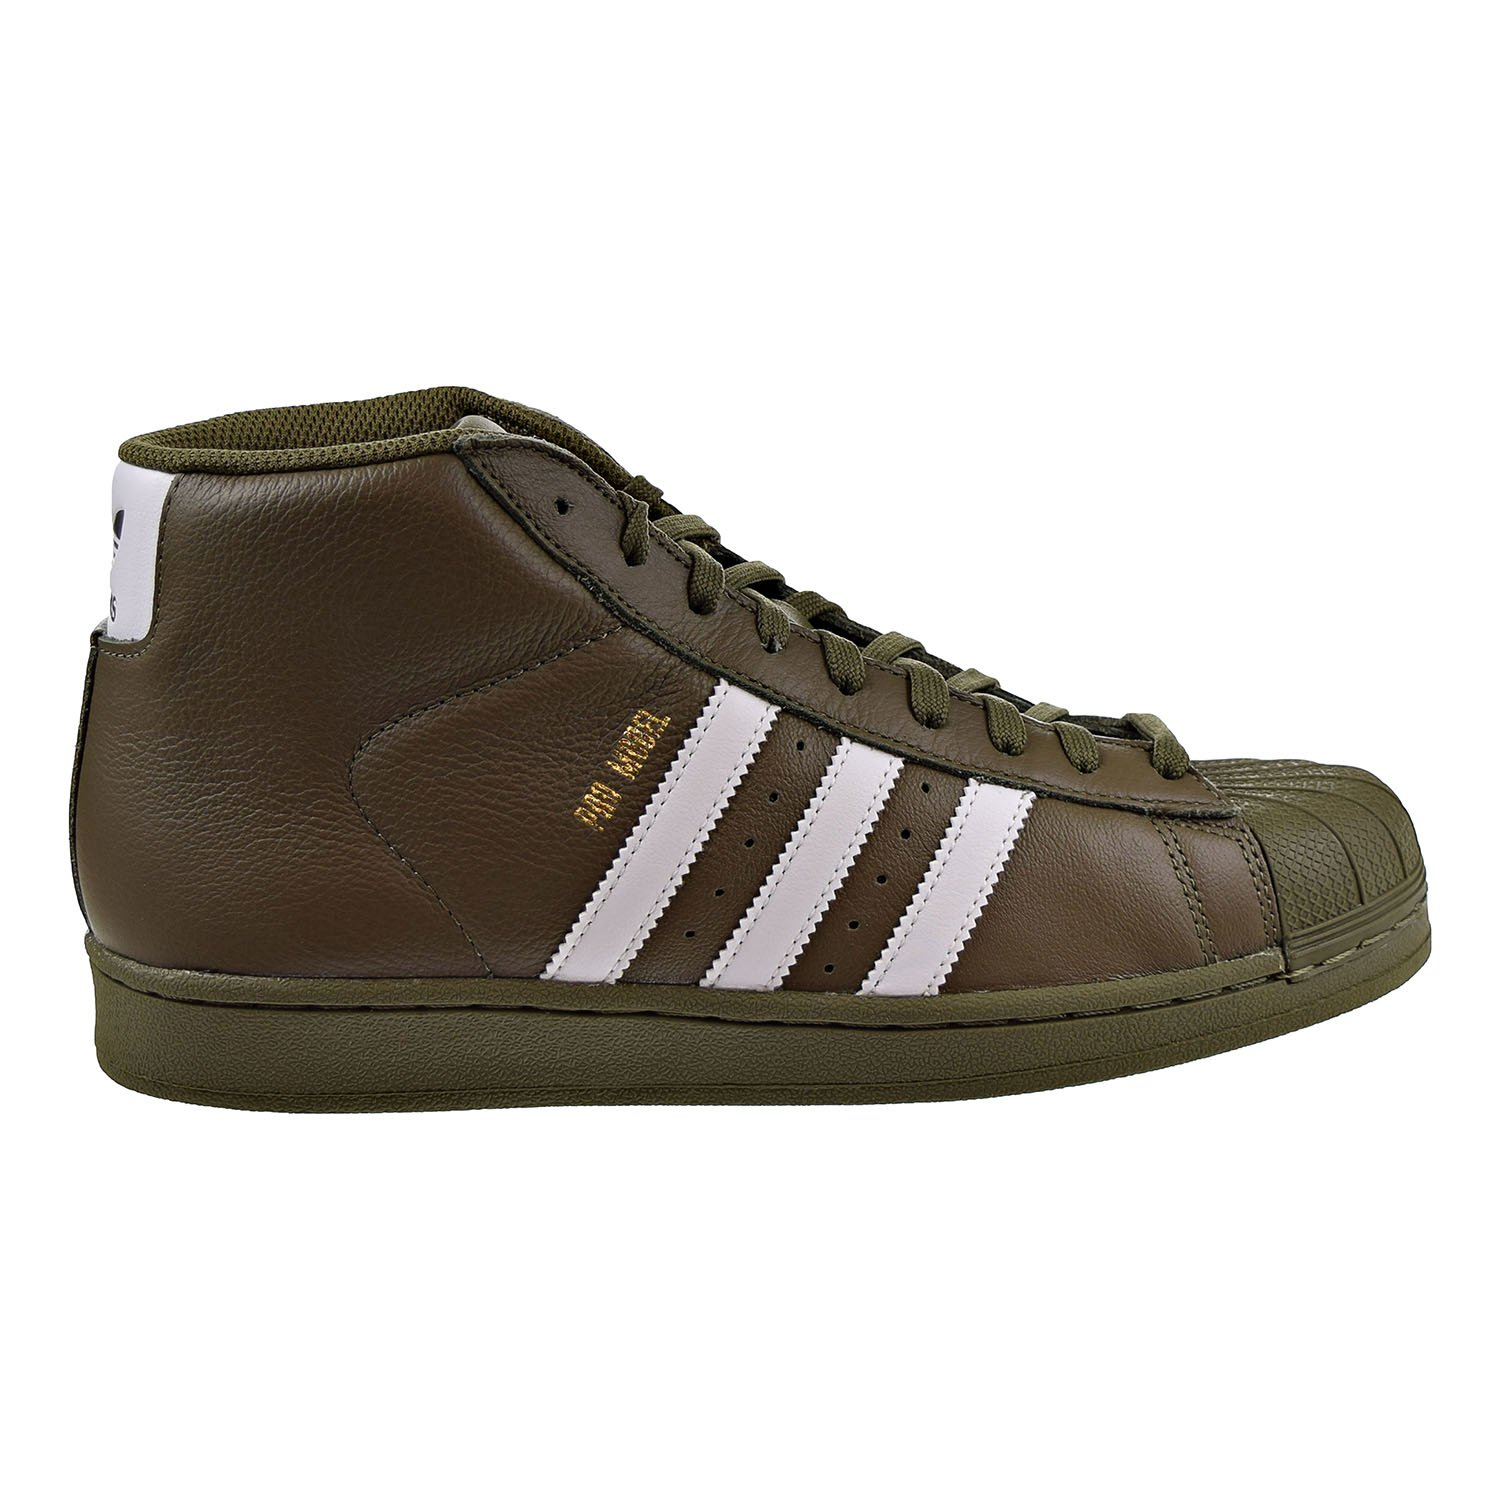 adidas Men's Pro Model Sneakers,Olive/Cargo,7.5 B076FB568W 9 D(M) US|Olive/White/Gold